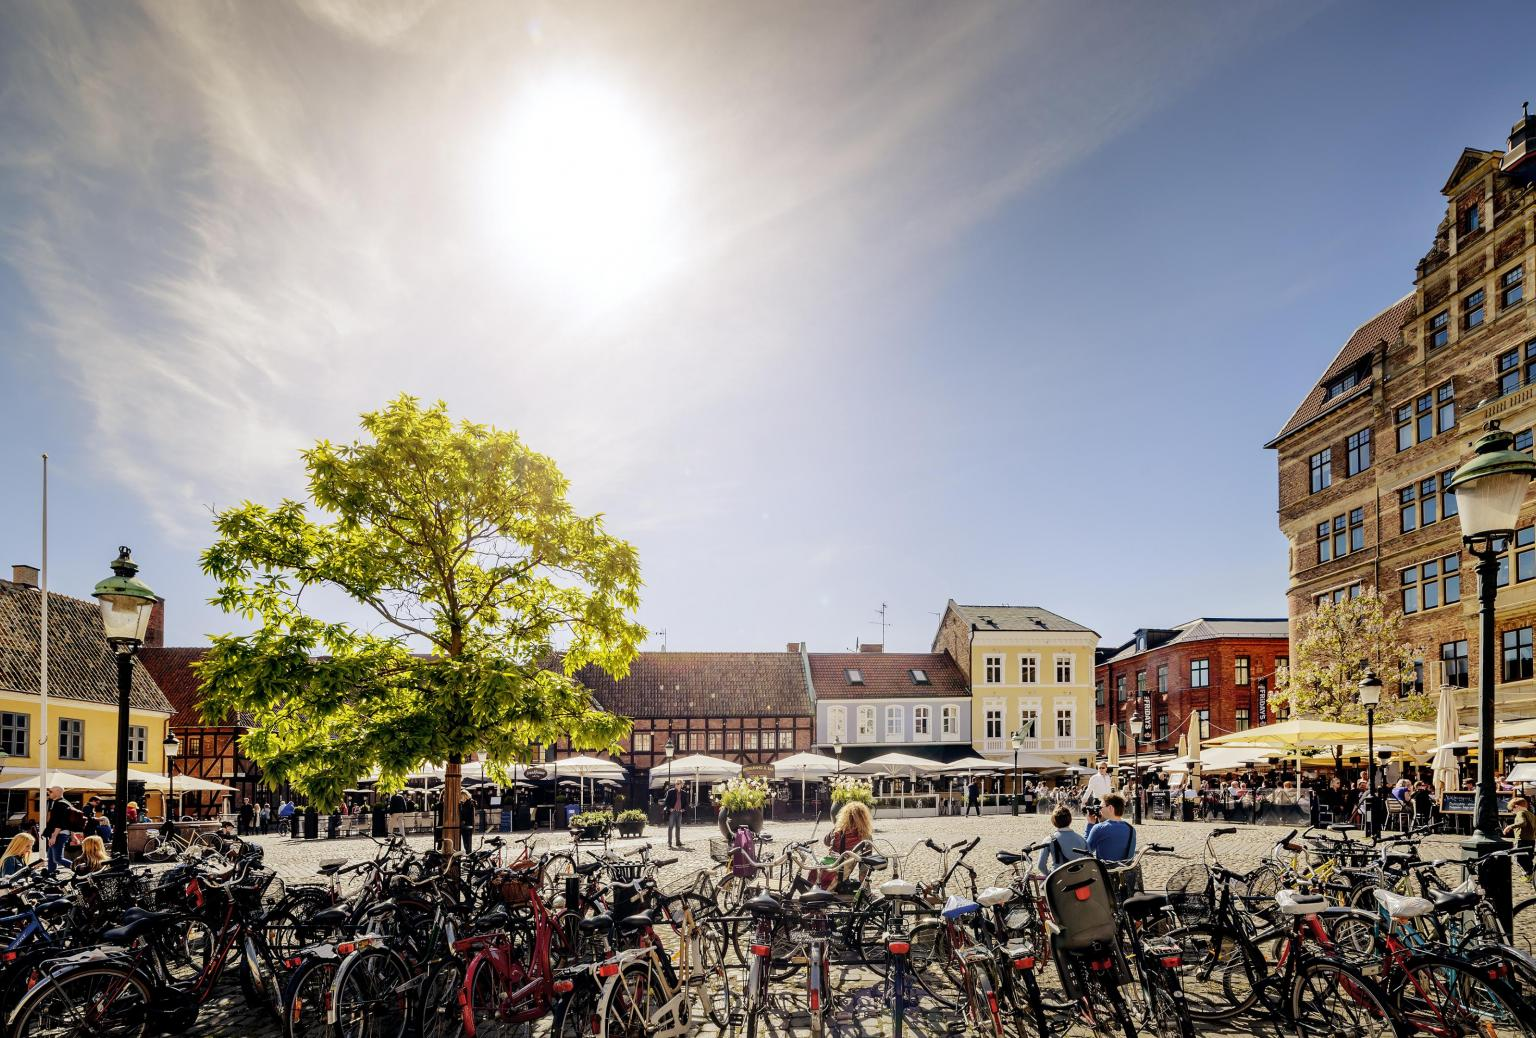 Bicycles parked at Lilla torg in Malmö on a sunny summer day